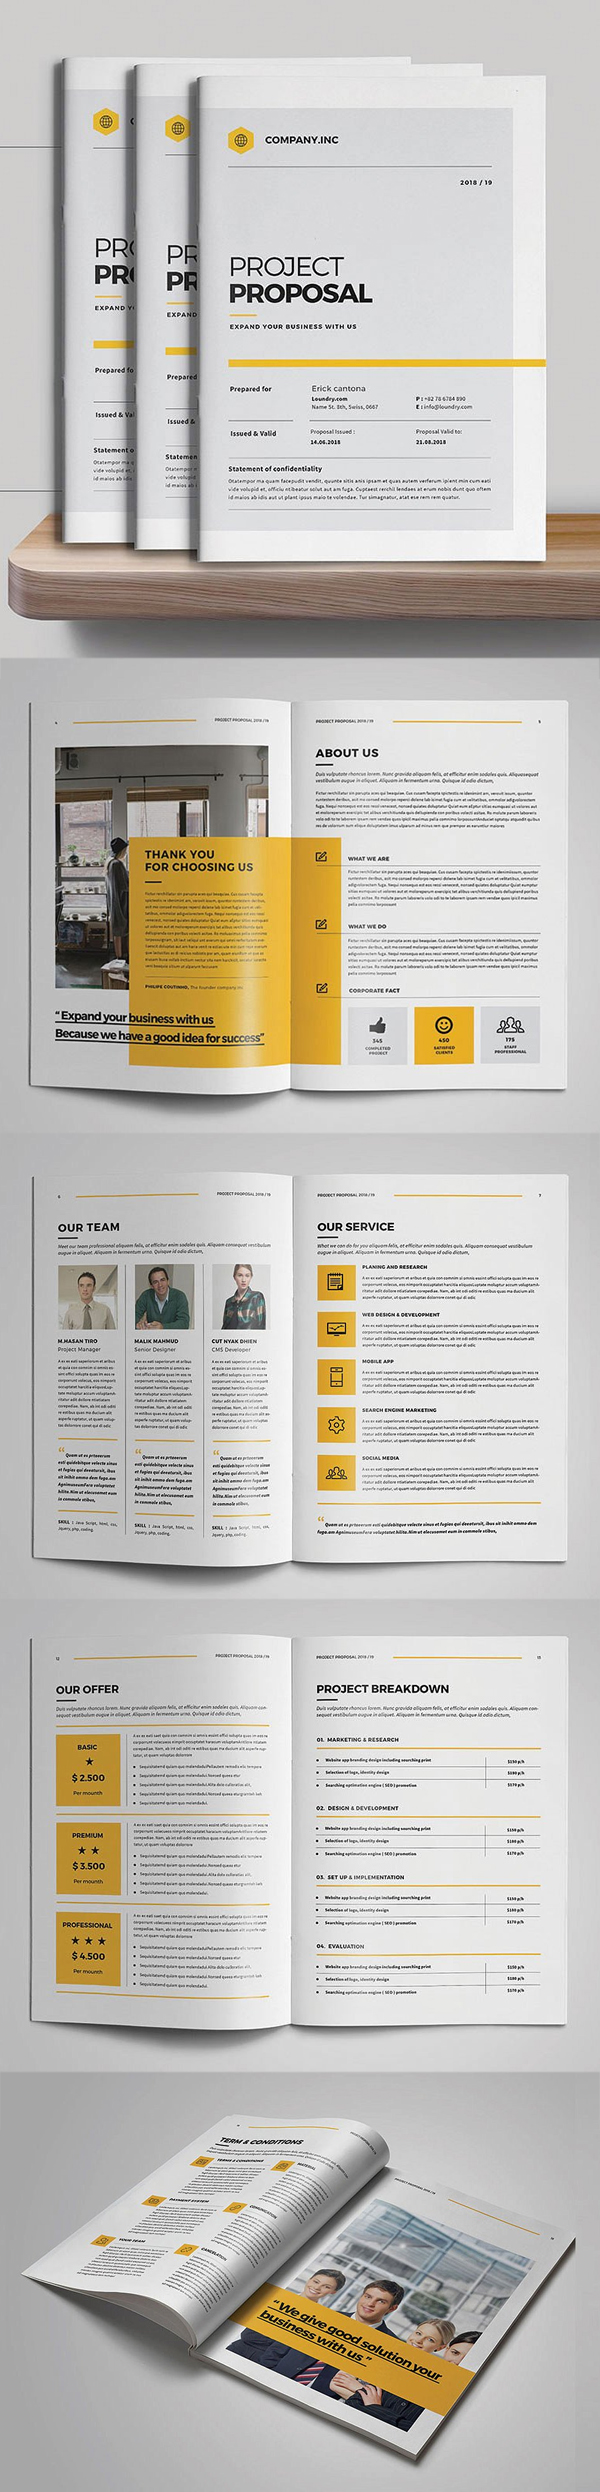 Business proposal templates design graphic design junction professional business proposal templates design 13 wajeb Images